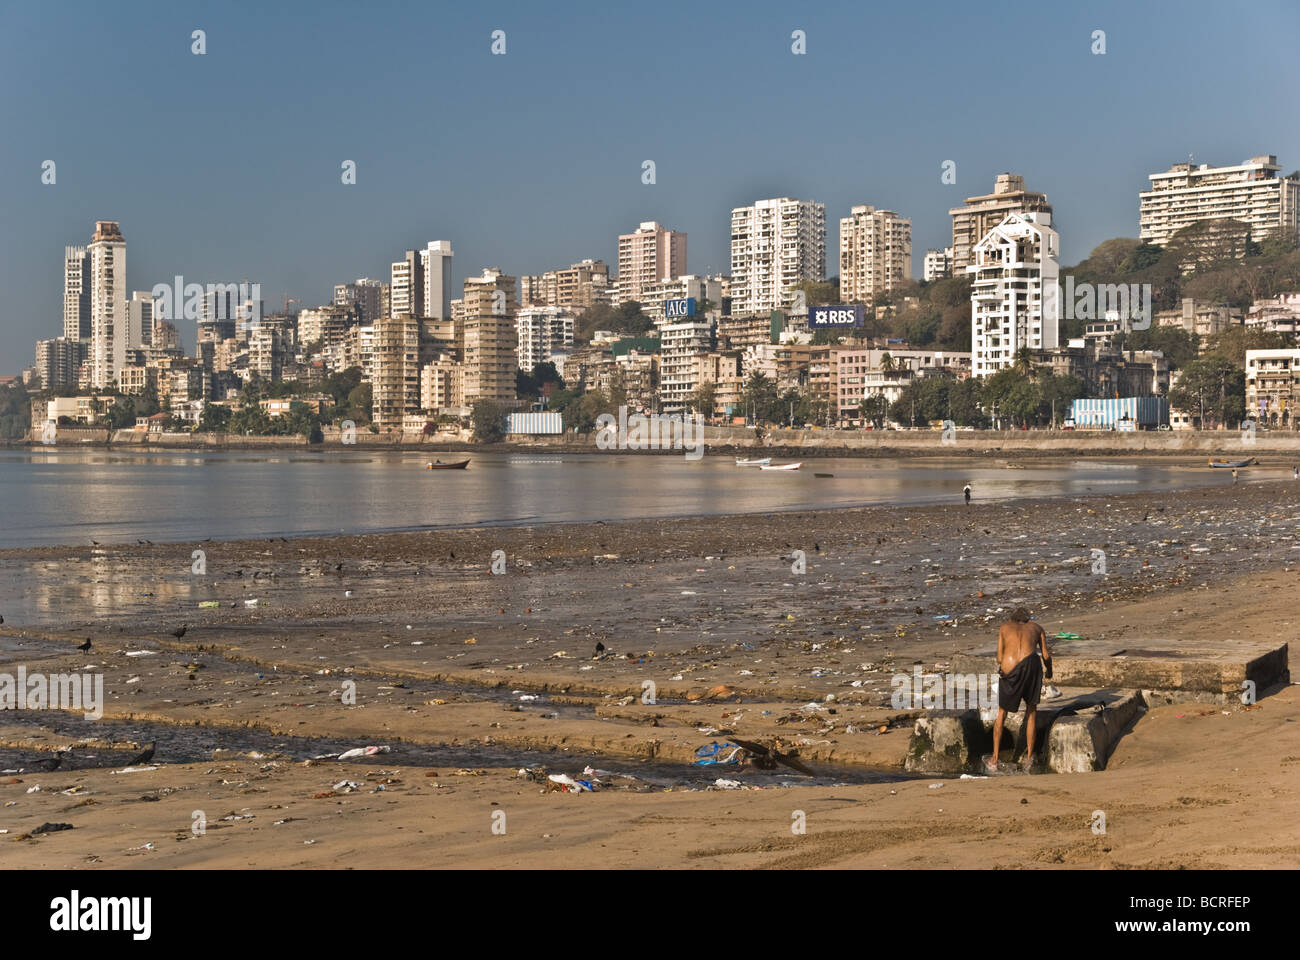 A homeless person washing on the Mumbai beach - Stock Image